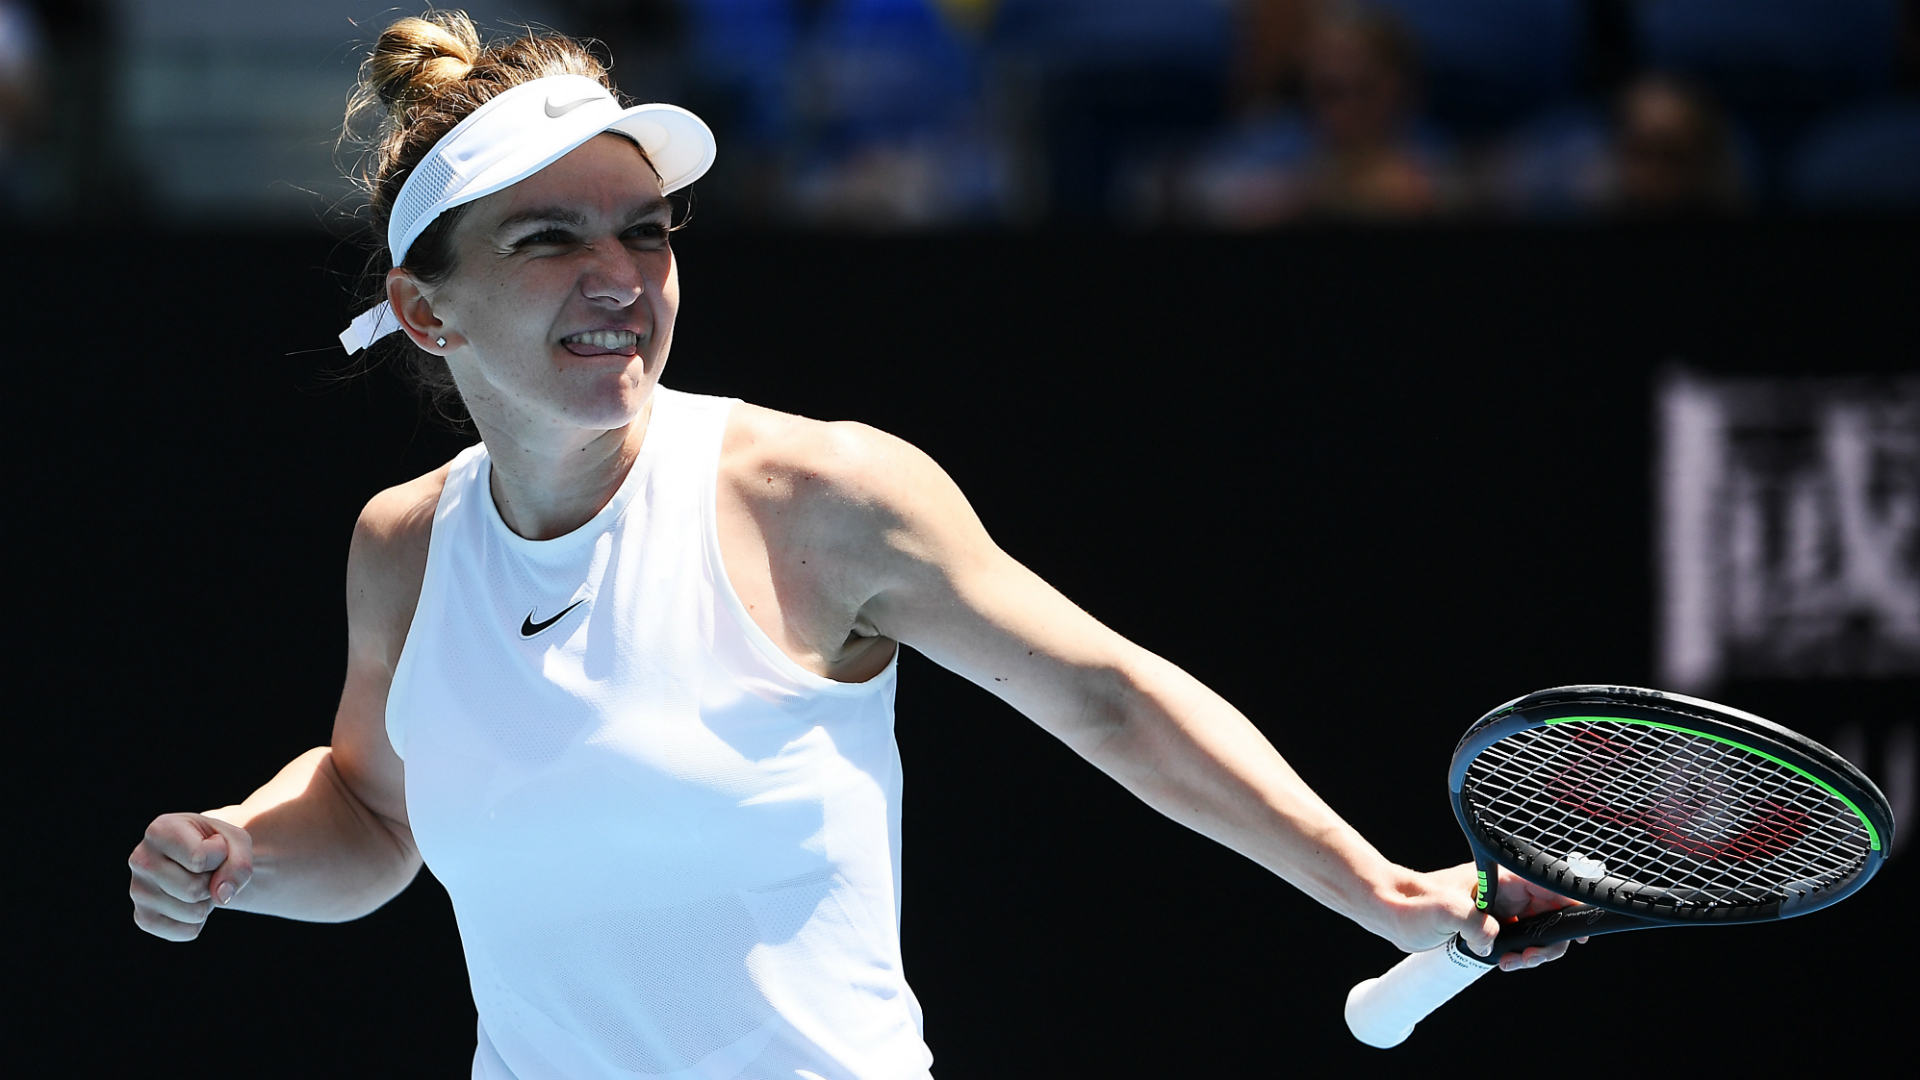 Australian Open 2020: Halep marches on as another seed falls to Muguruza